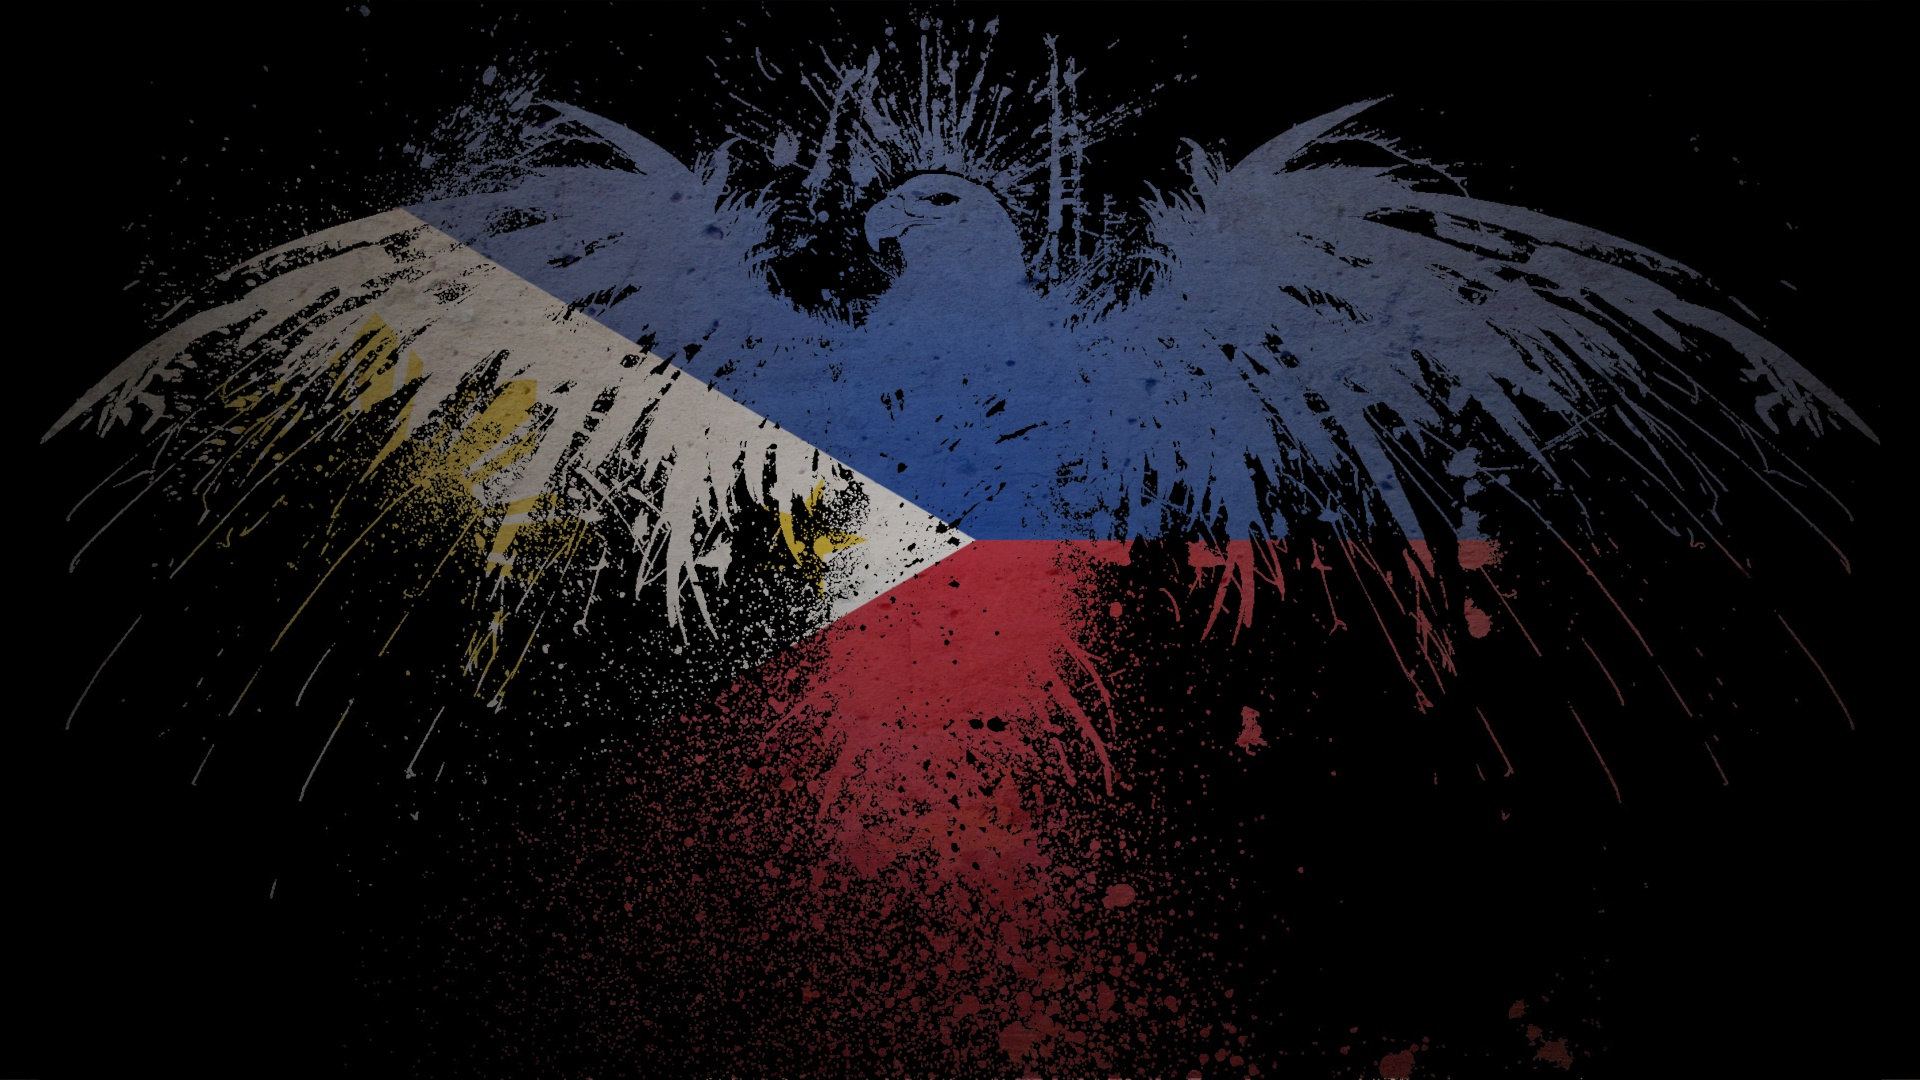 Eagles Flags Wallpaper 1920x1080 Eagles Flags Philippines 1920x1080